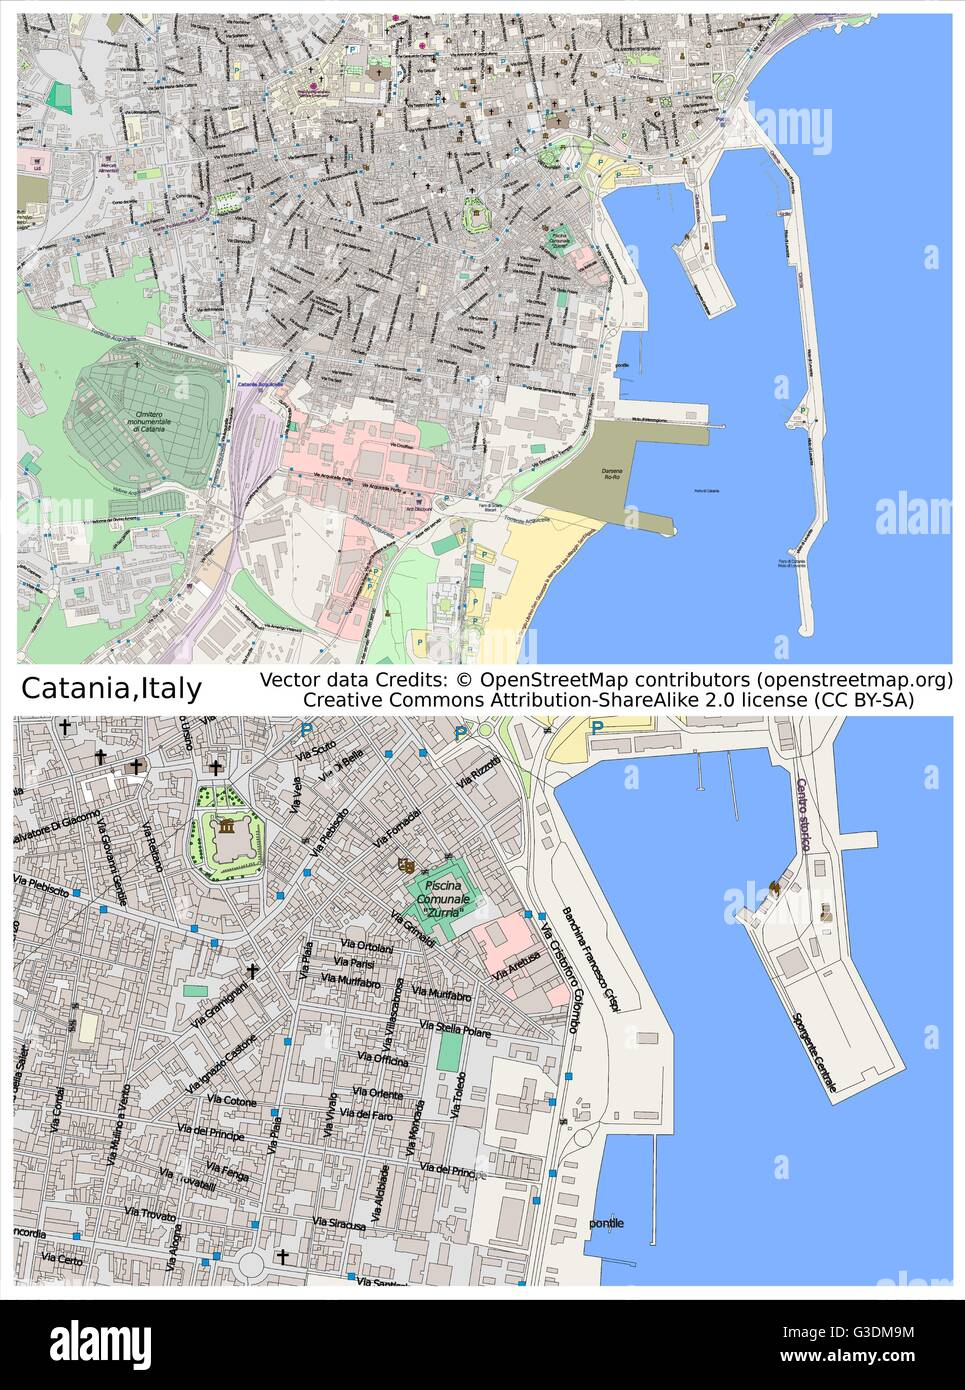 Catania italy city map stock vector art illustration vector image catania italy city map altavistaventures Image collections